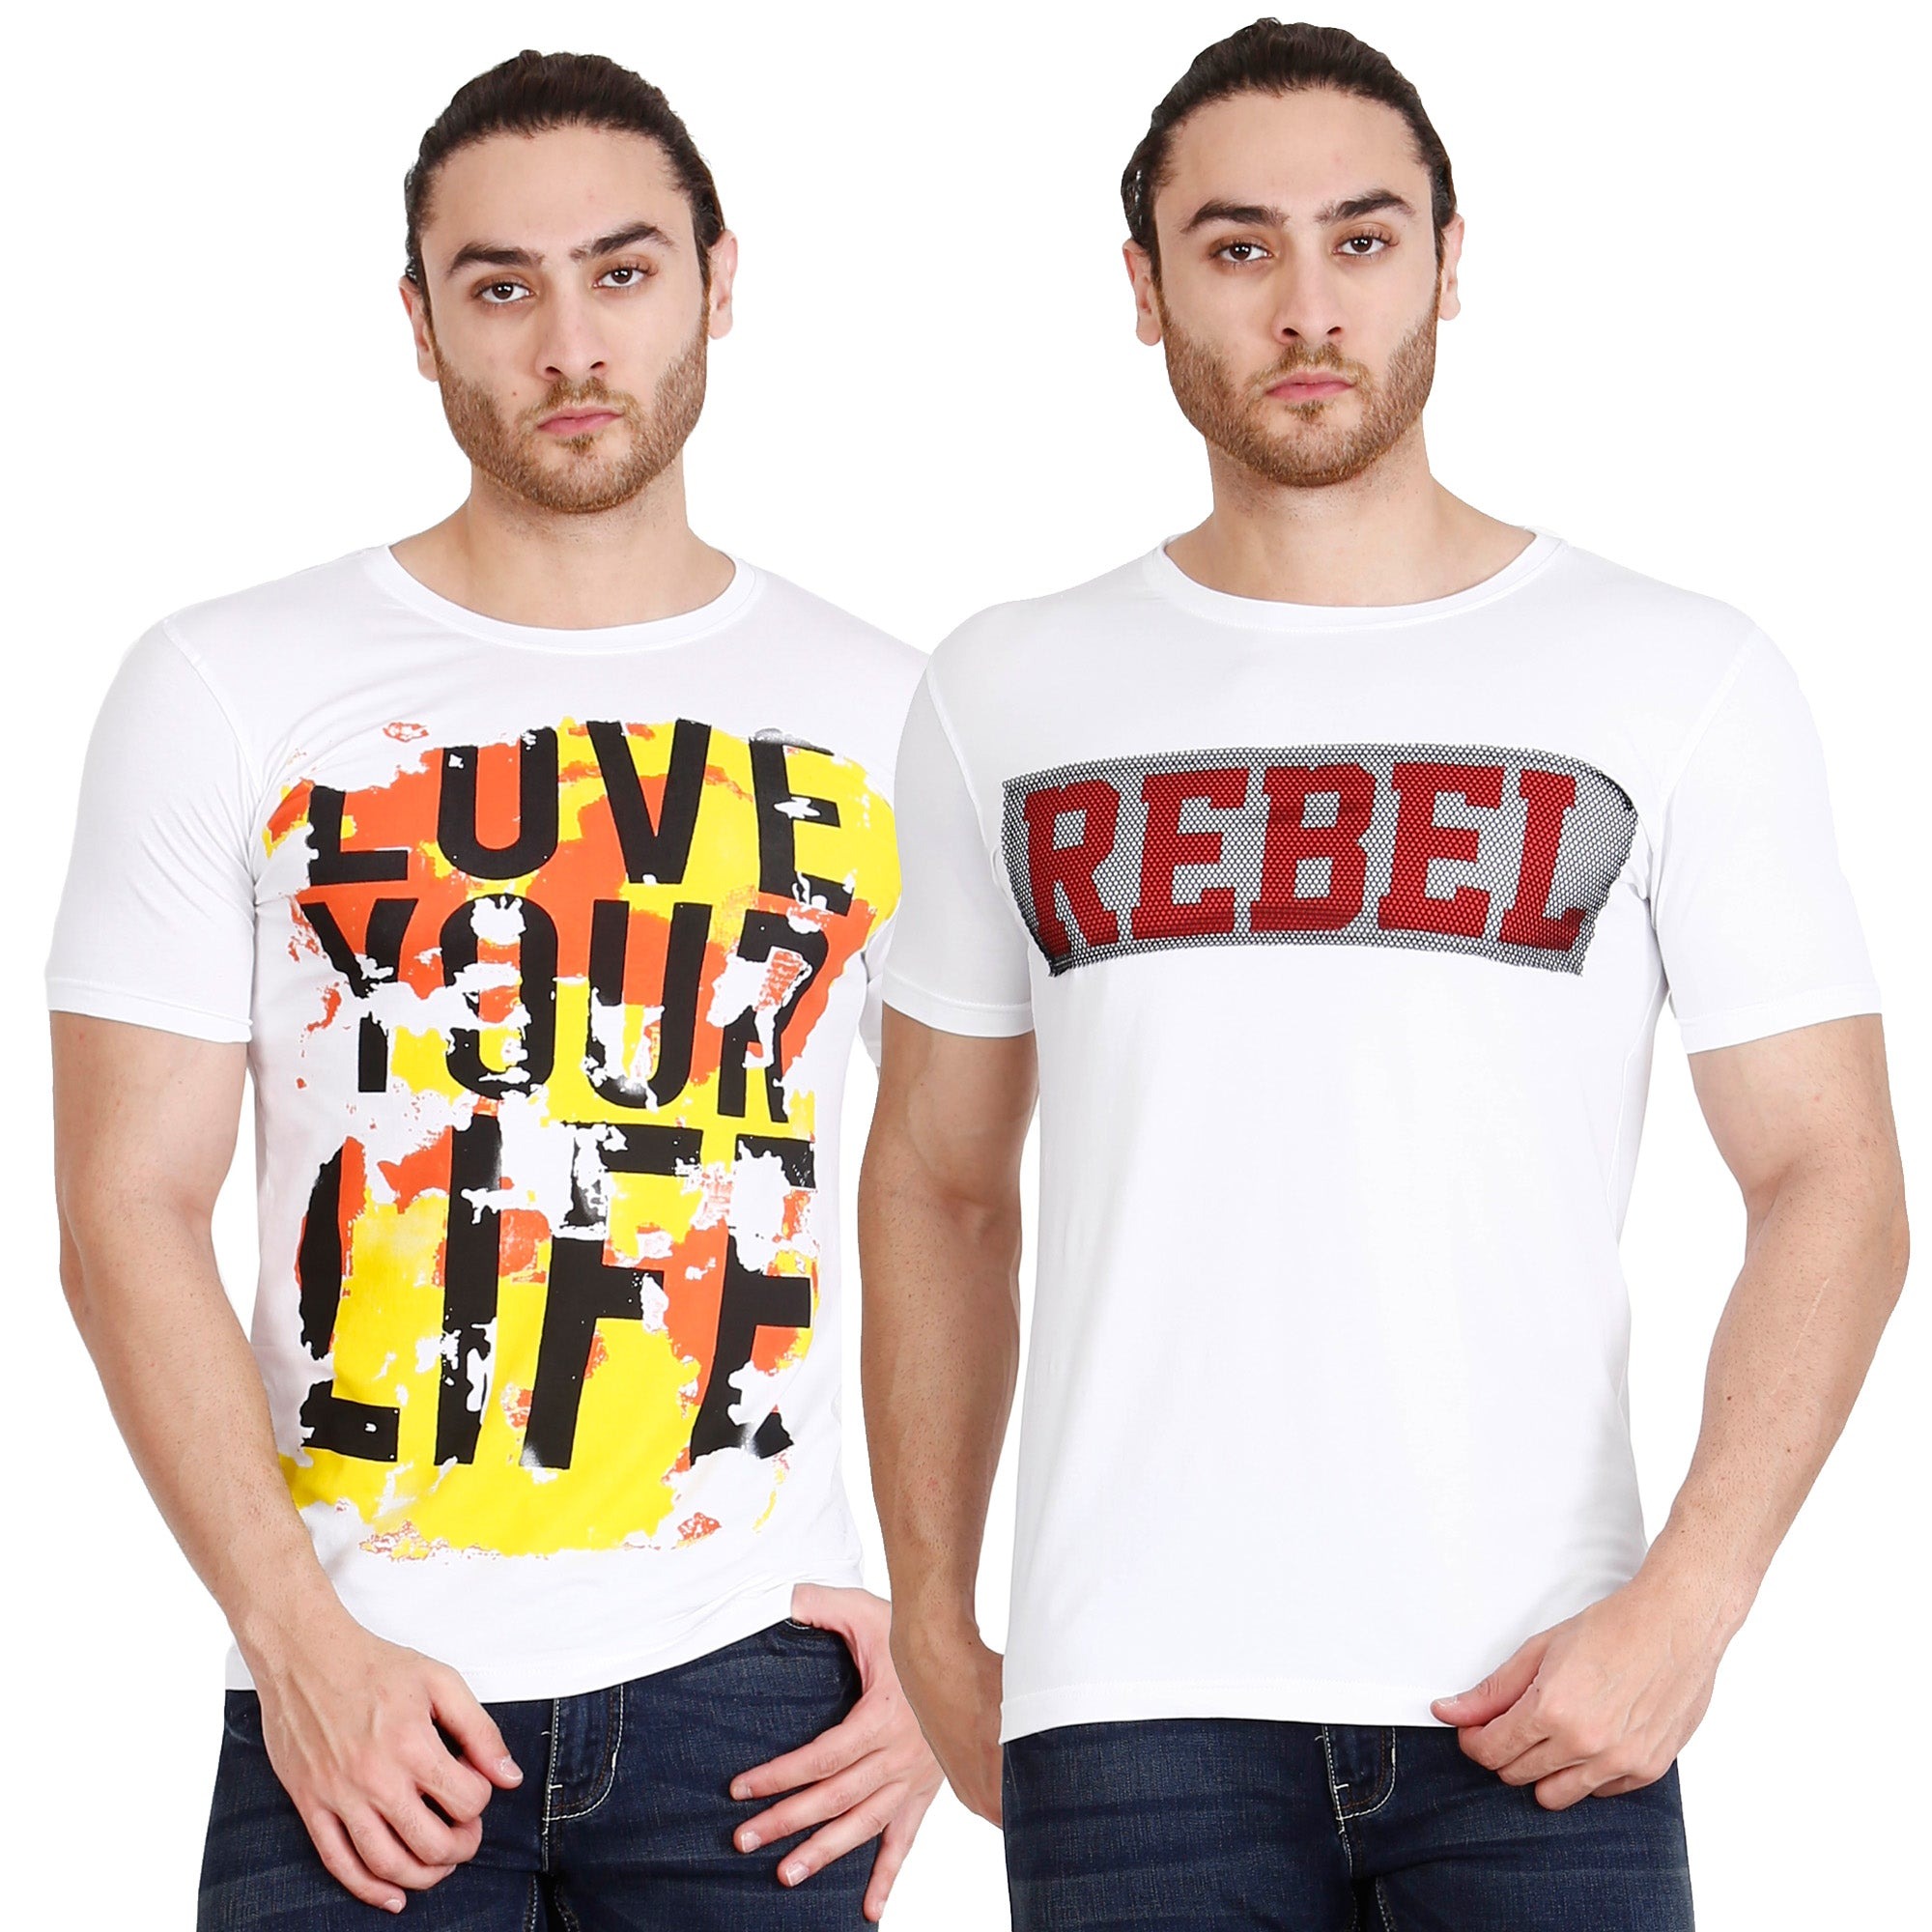 Men's pack of 2 White Printed T-Shirts